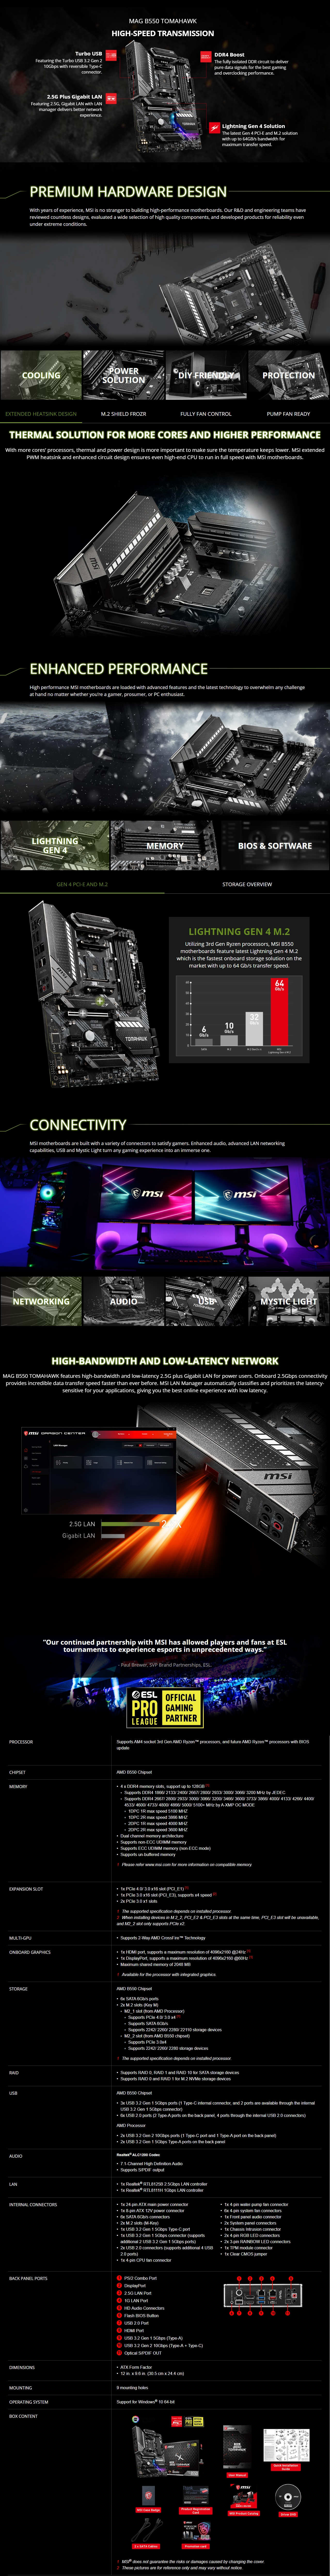 A large marketing image providing additional information about the product MSI MAG B550 Tomahawk AM4 ATX Desktop Motherboard - Additional alt info not provided